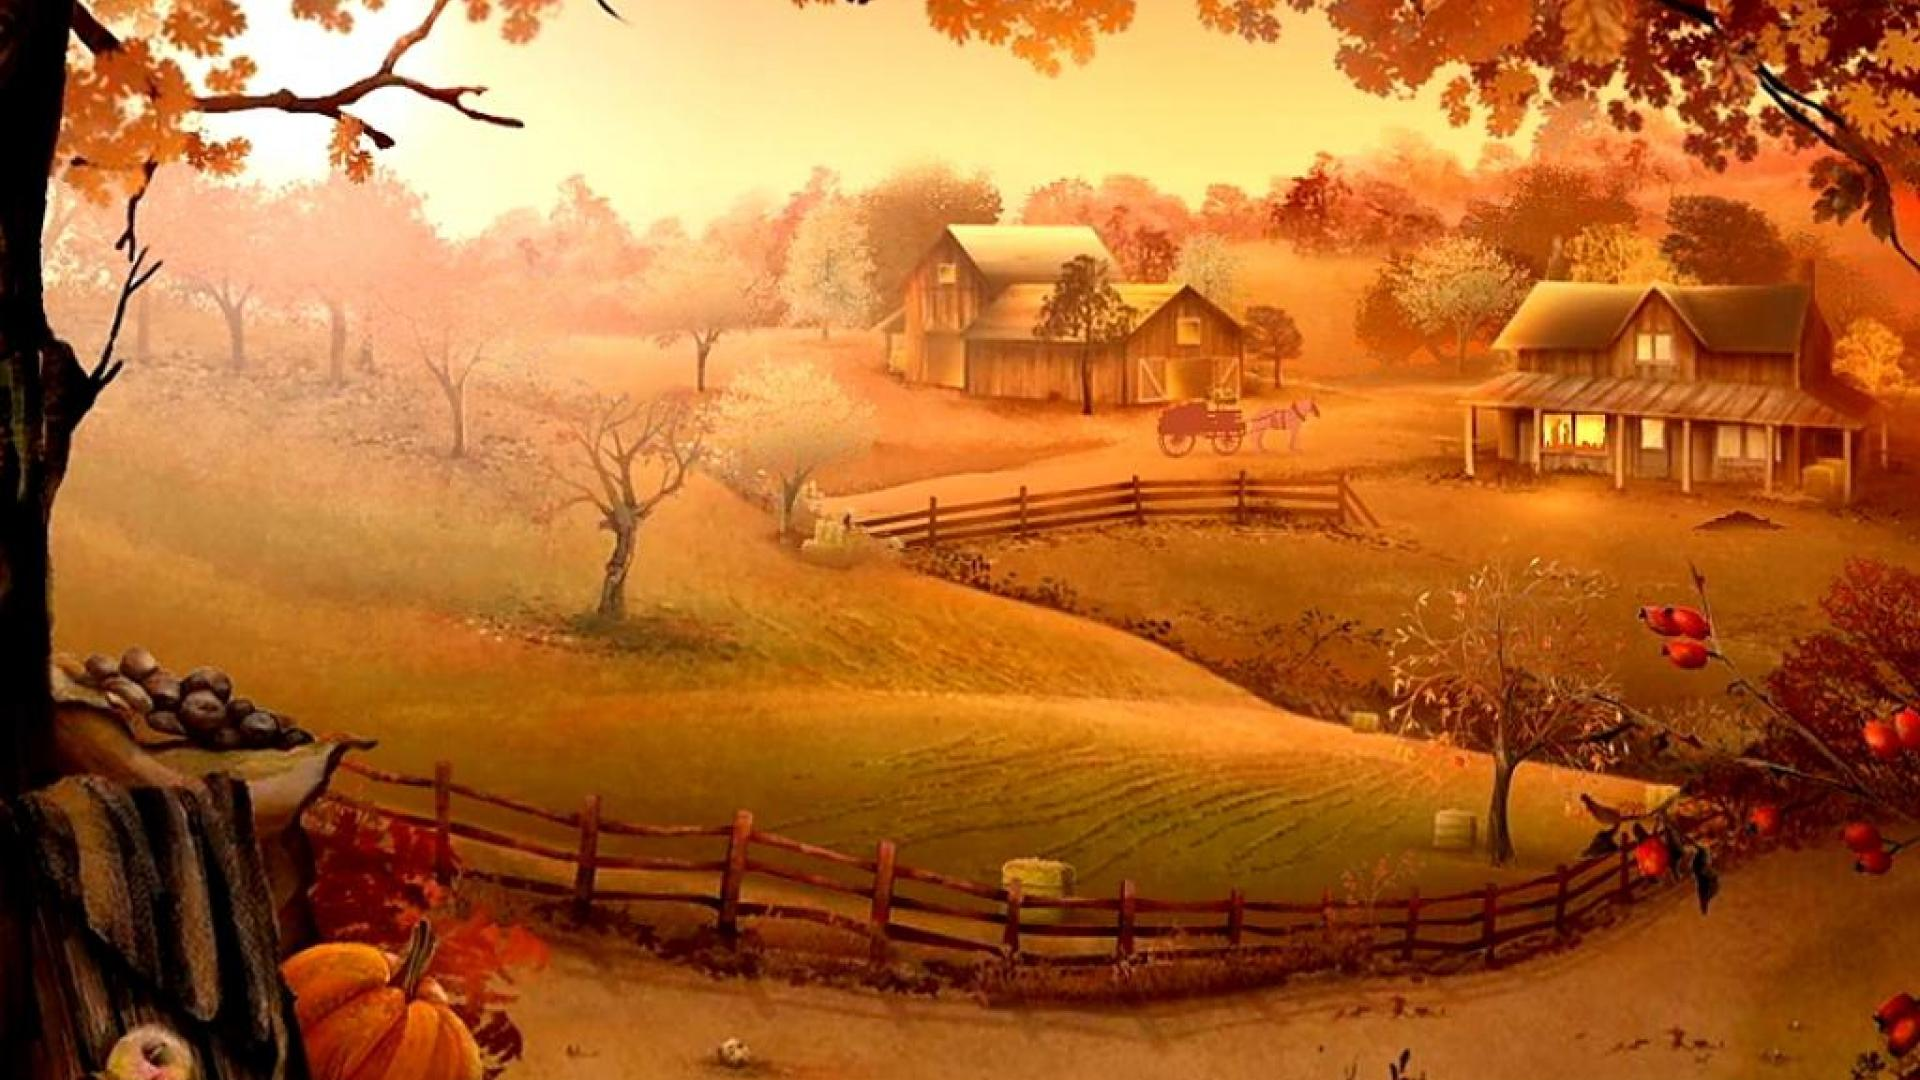 1920x1080 thanksgiving wallpaper: Thanksgiving Wallpapers For Desktop 1600x900